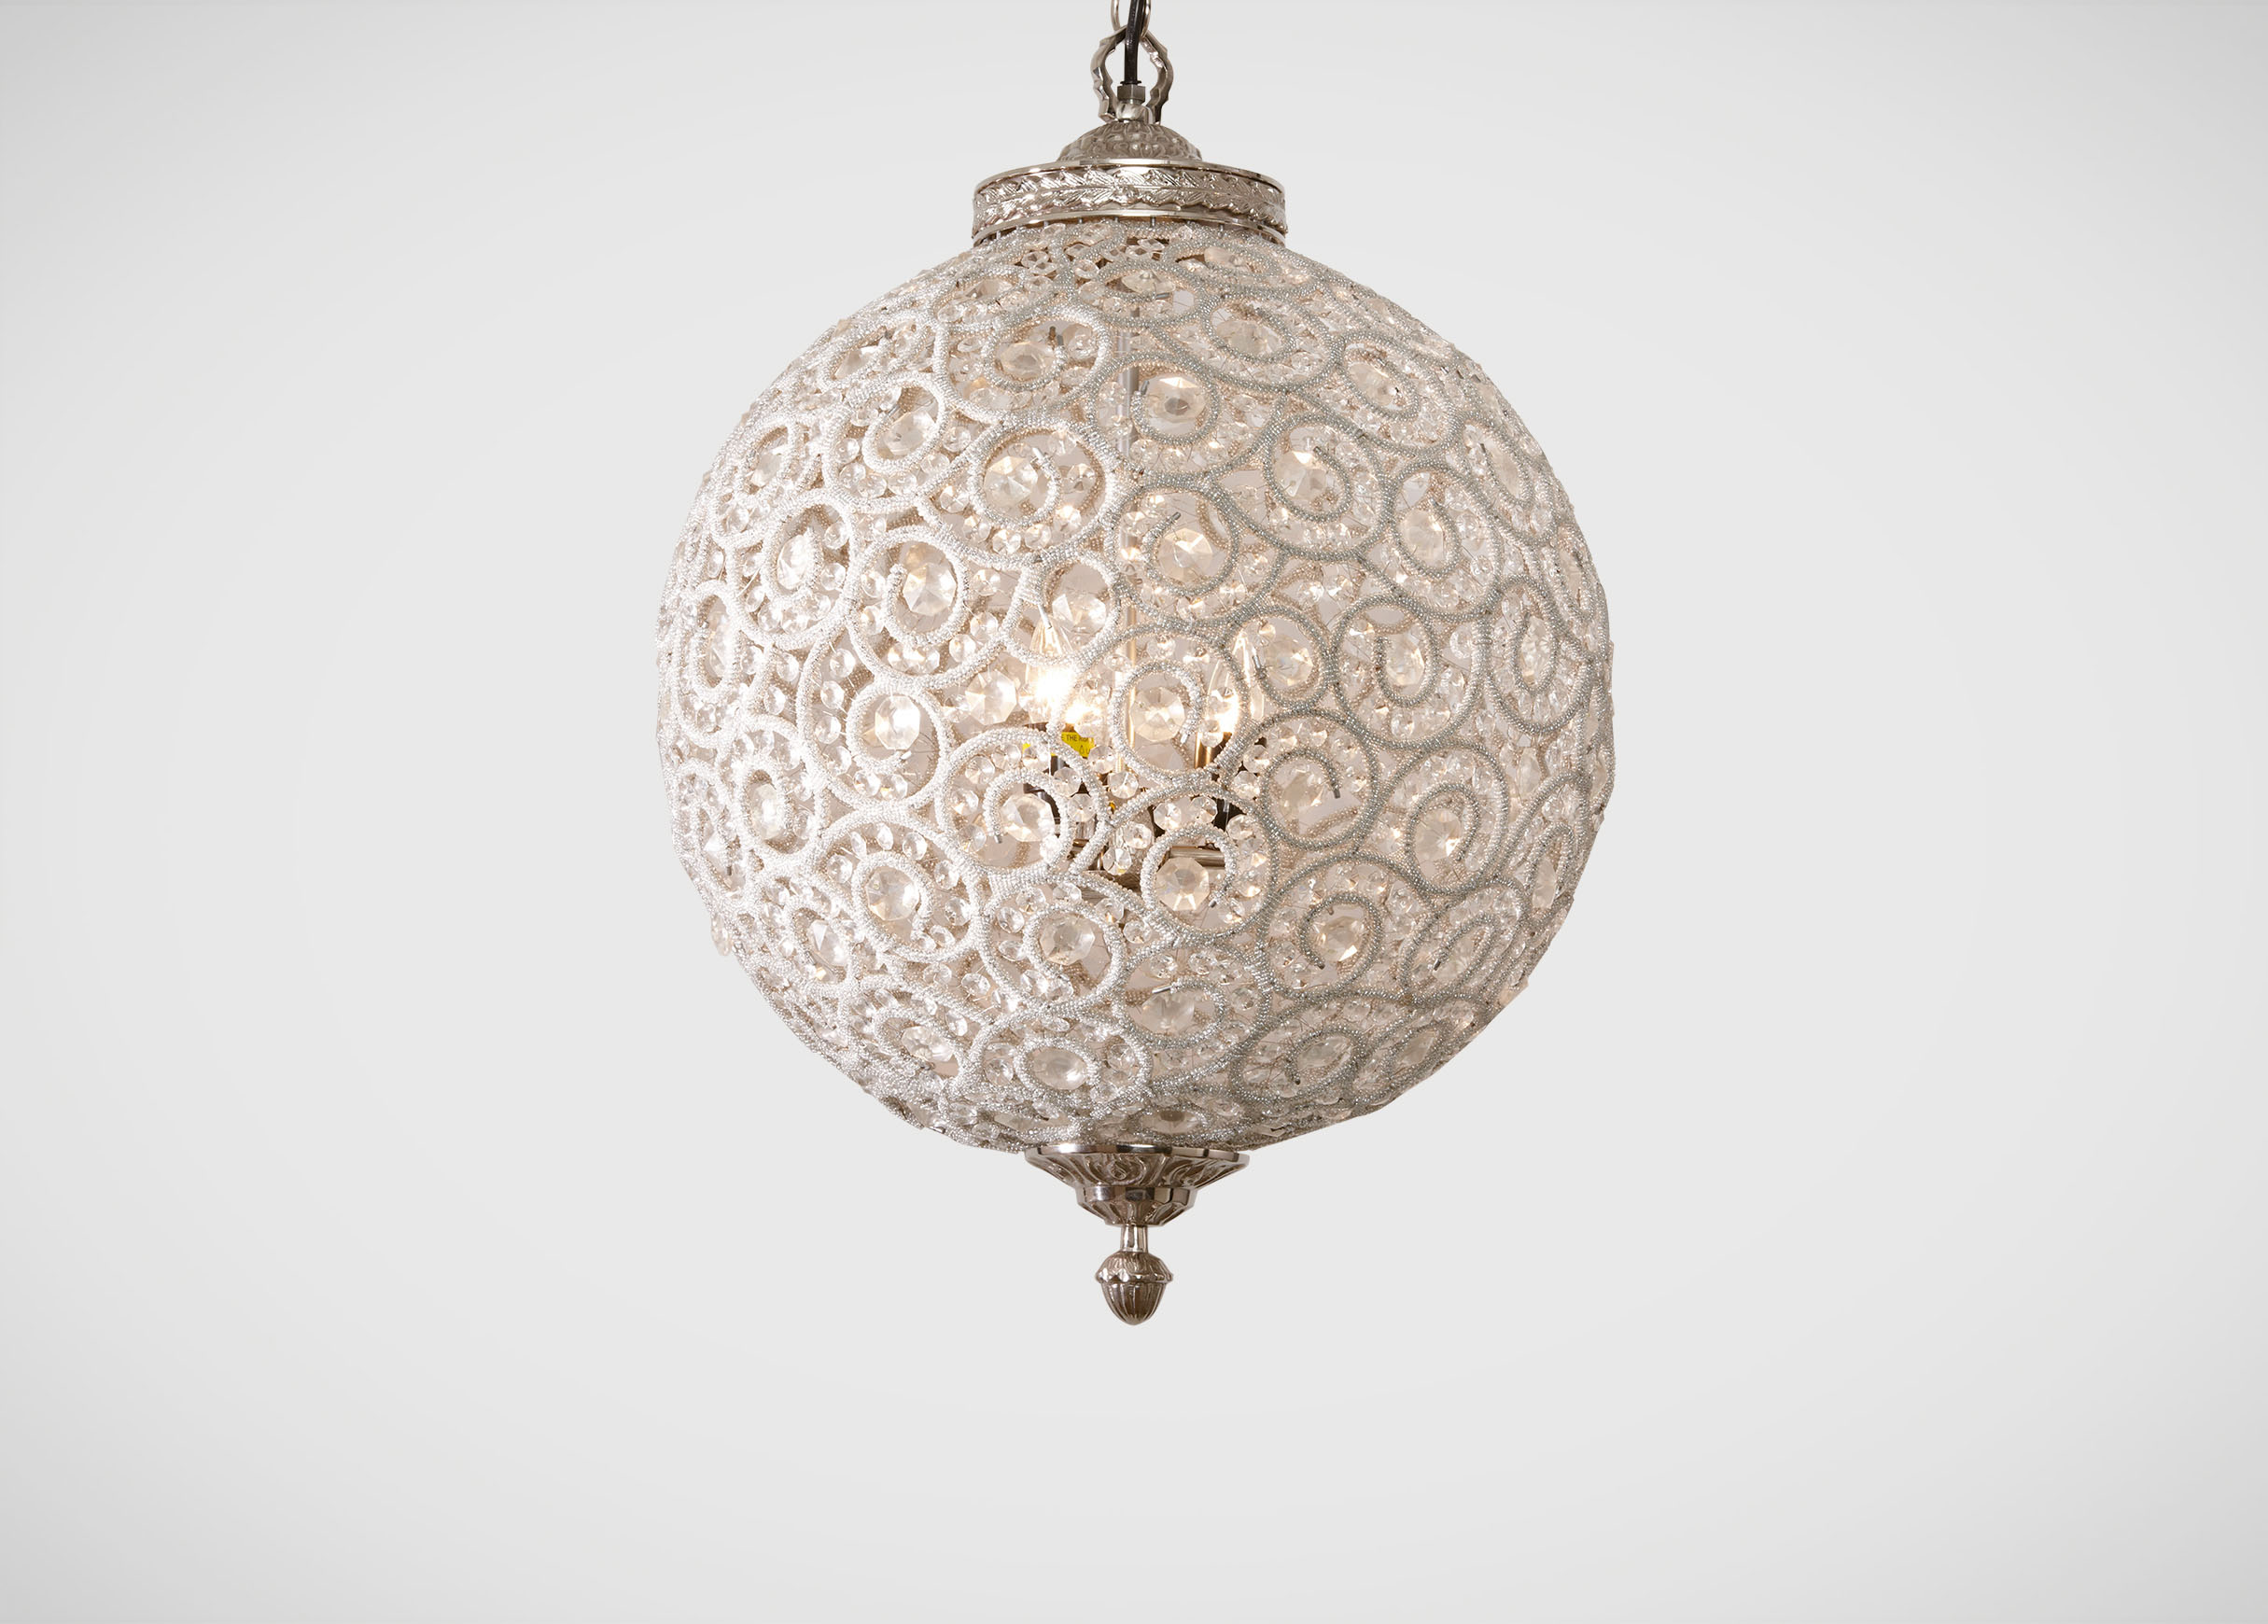 Engaging sphere chandelier metal orb chandelier with interesting Cheap Price for your Home Lighting